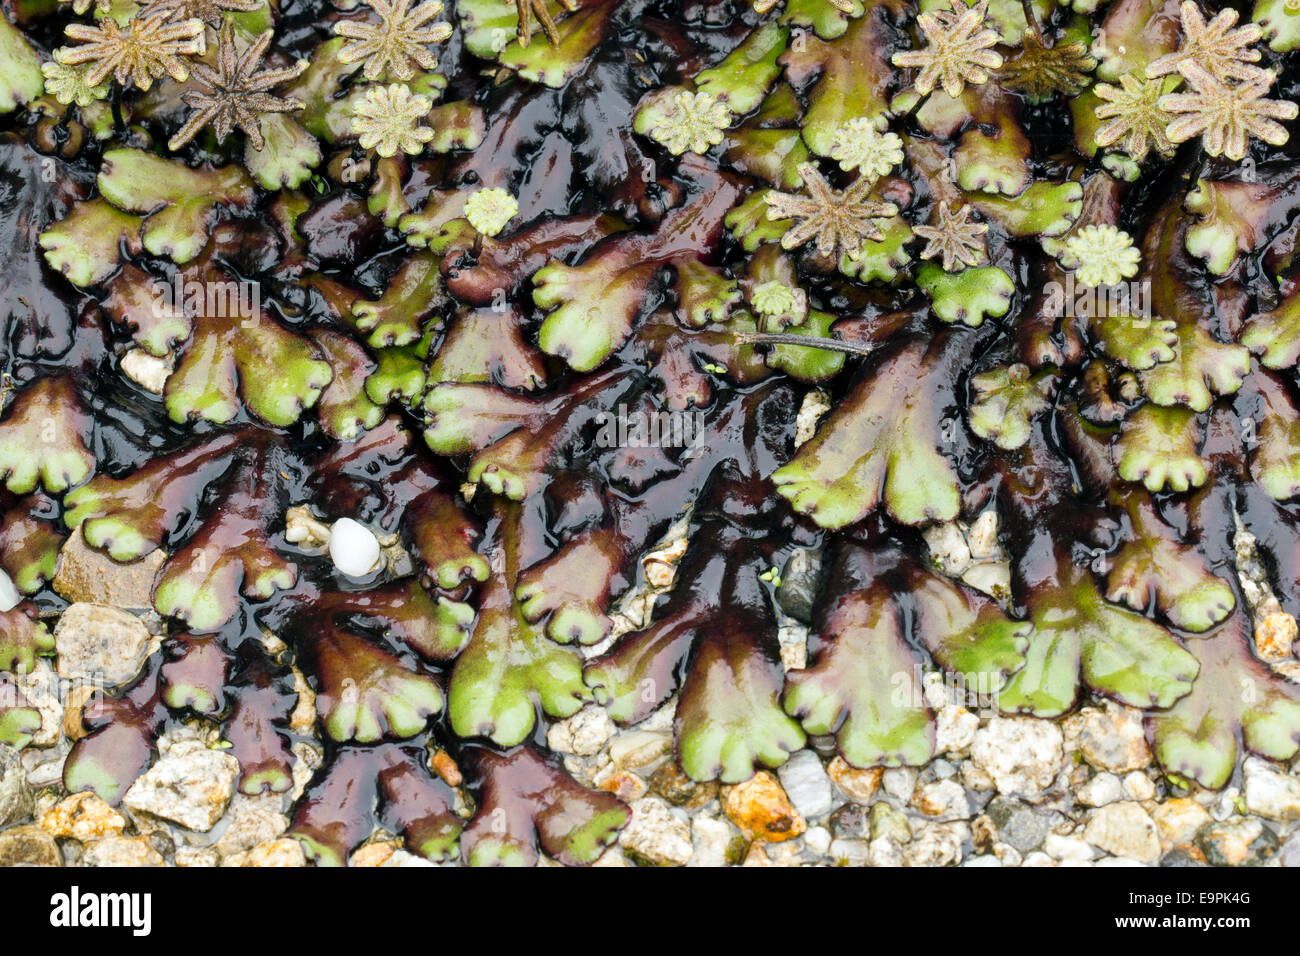 Marchantia liverworts with fruiting bodies (sporocarps) growing in cloudforest in the Ecuadorian Andes - Stock Image